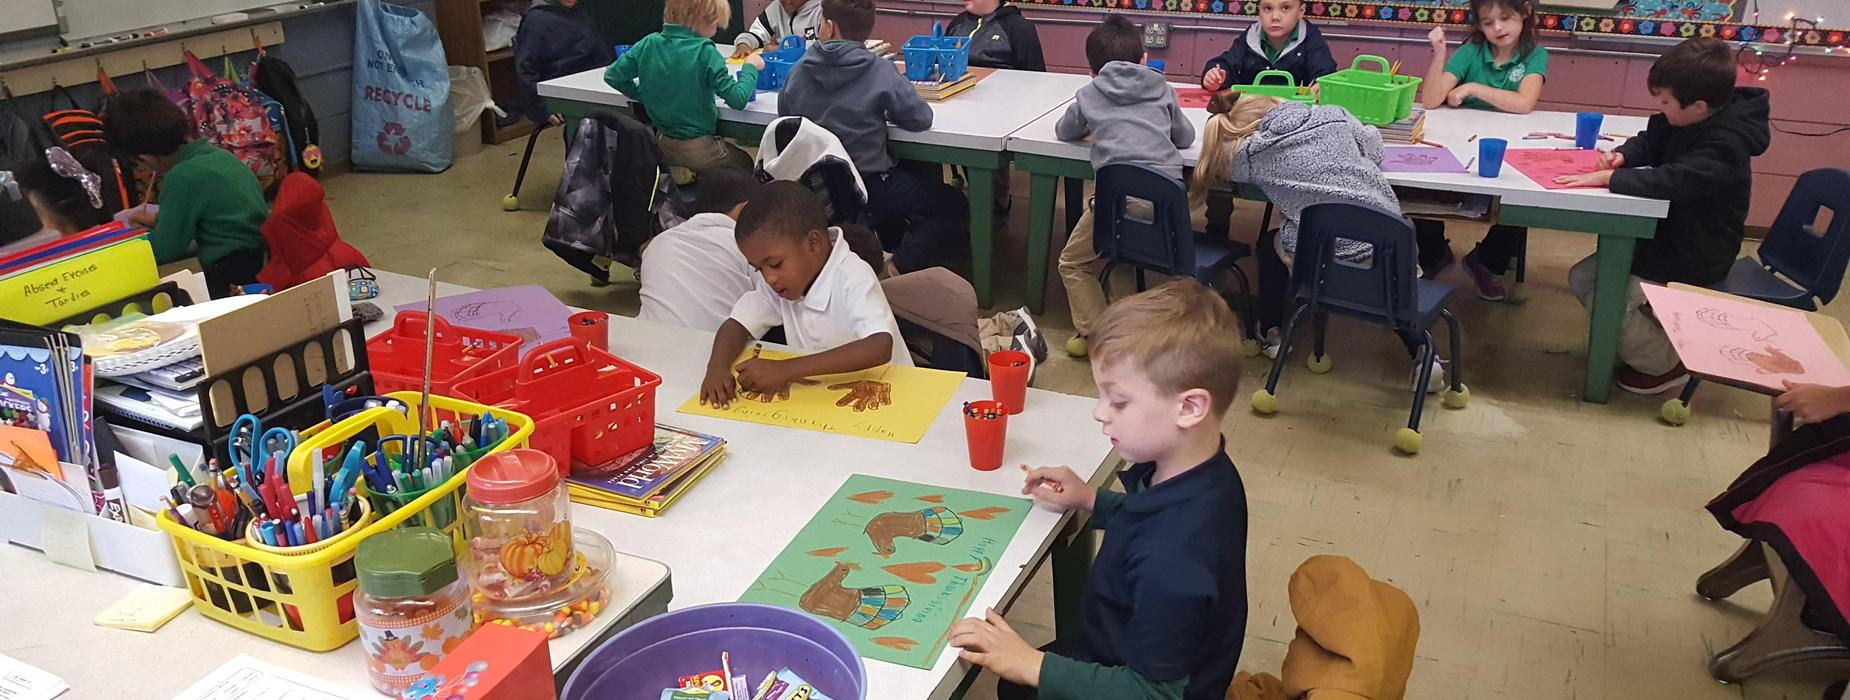 1st grade making placemats for Thanksgiving